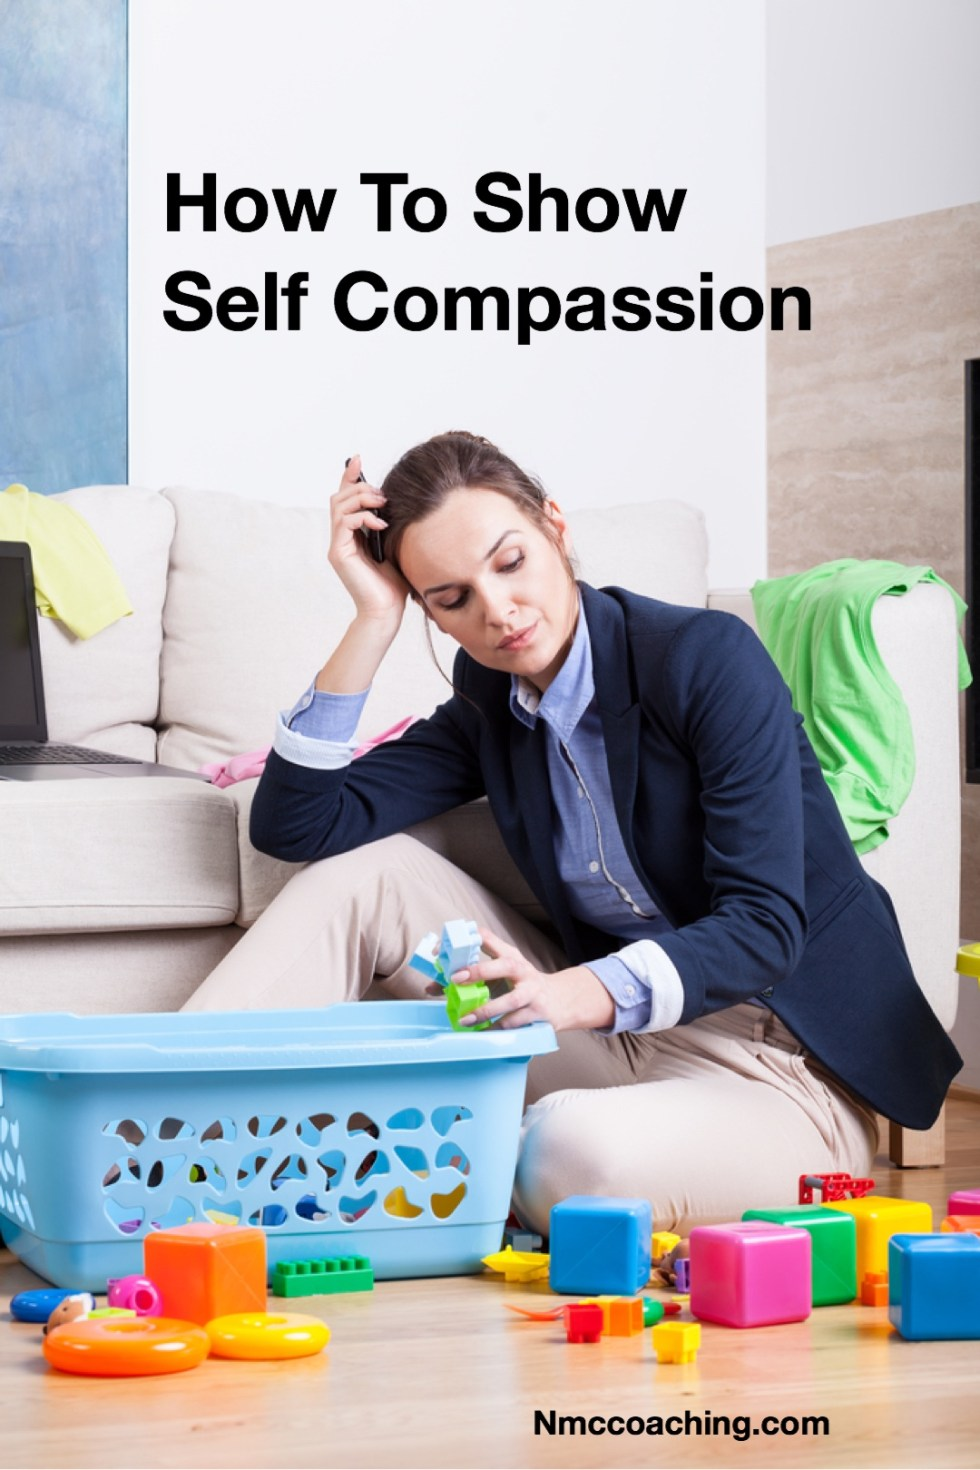 How To Show Self Compassion